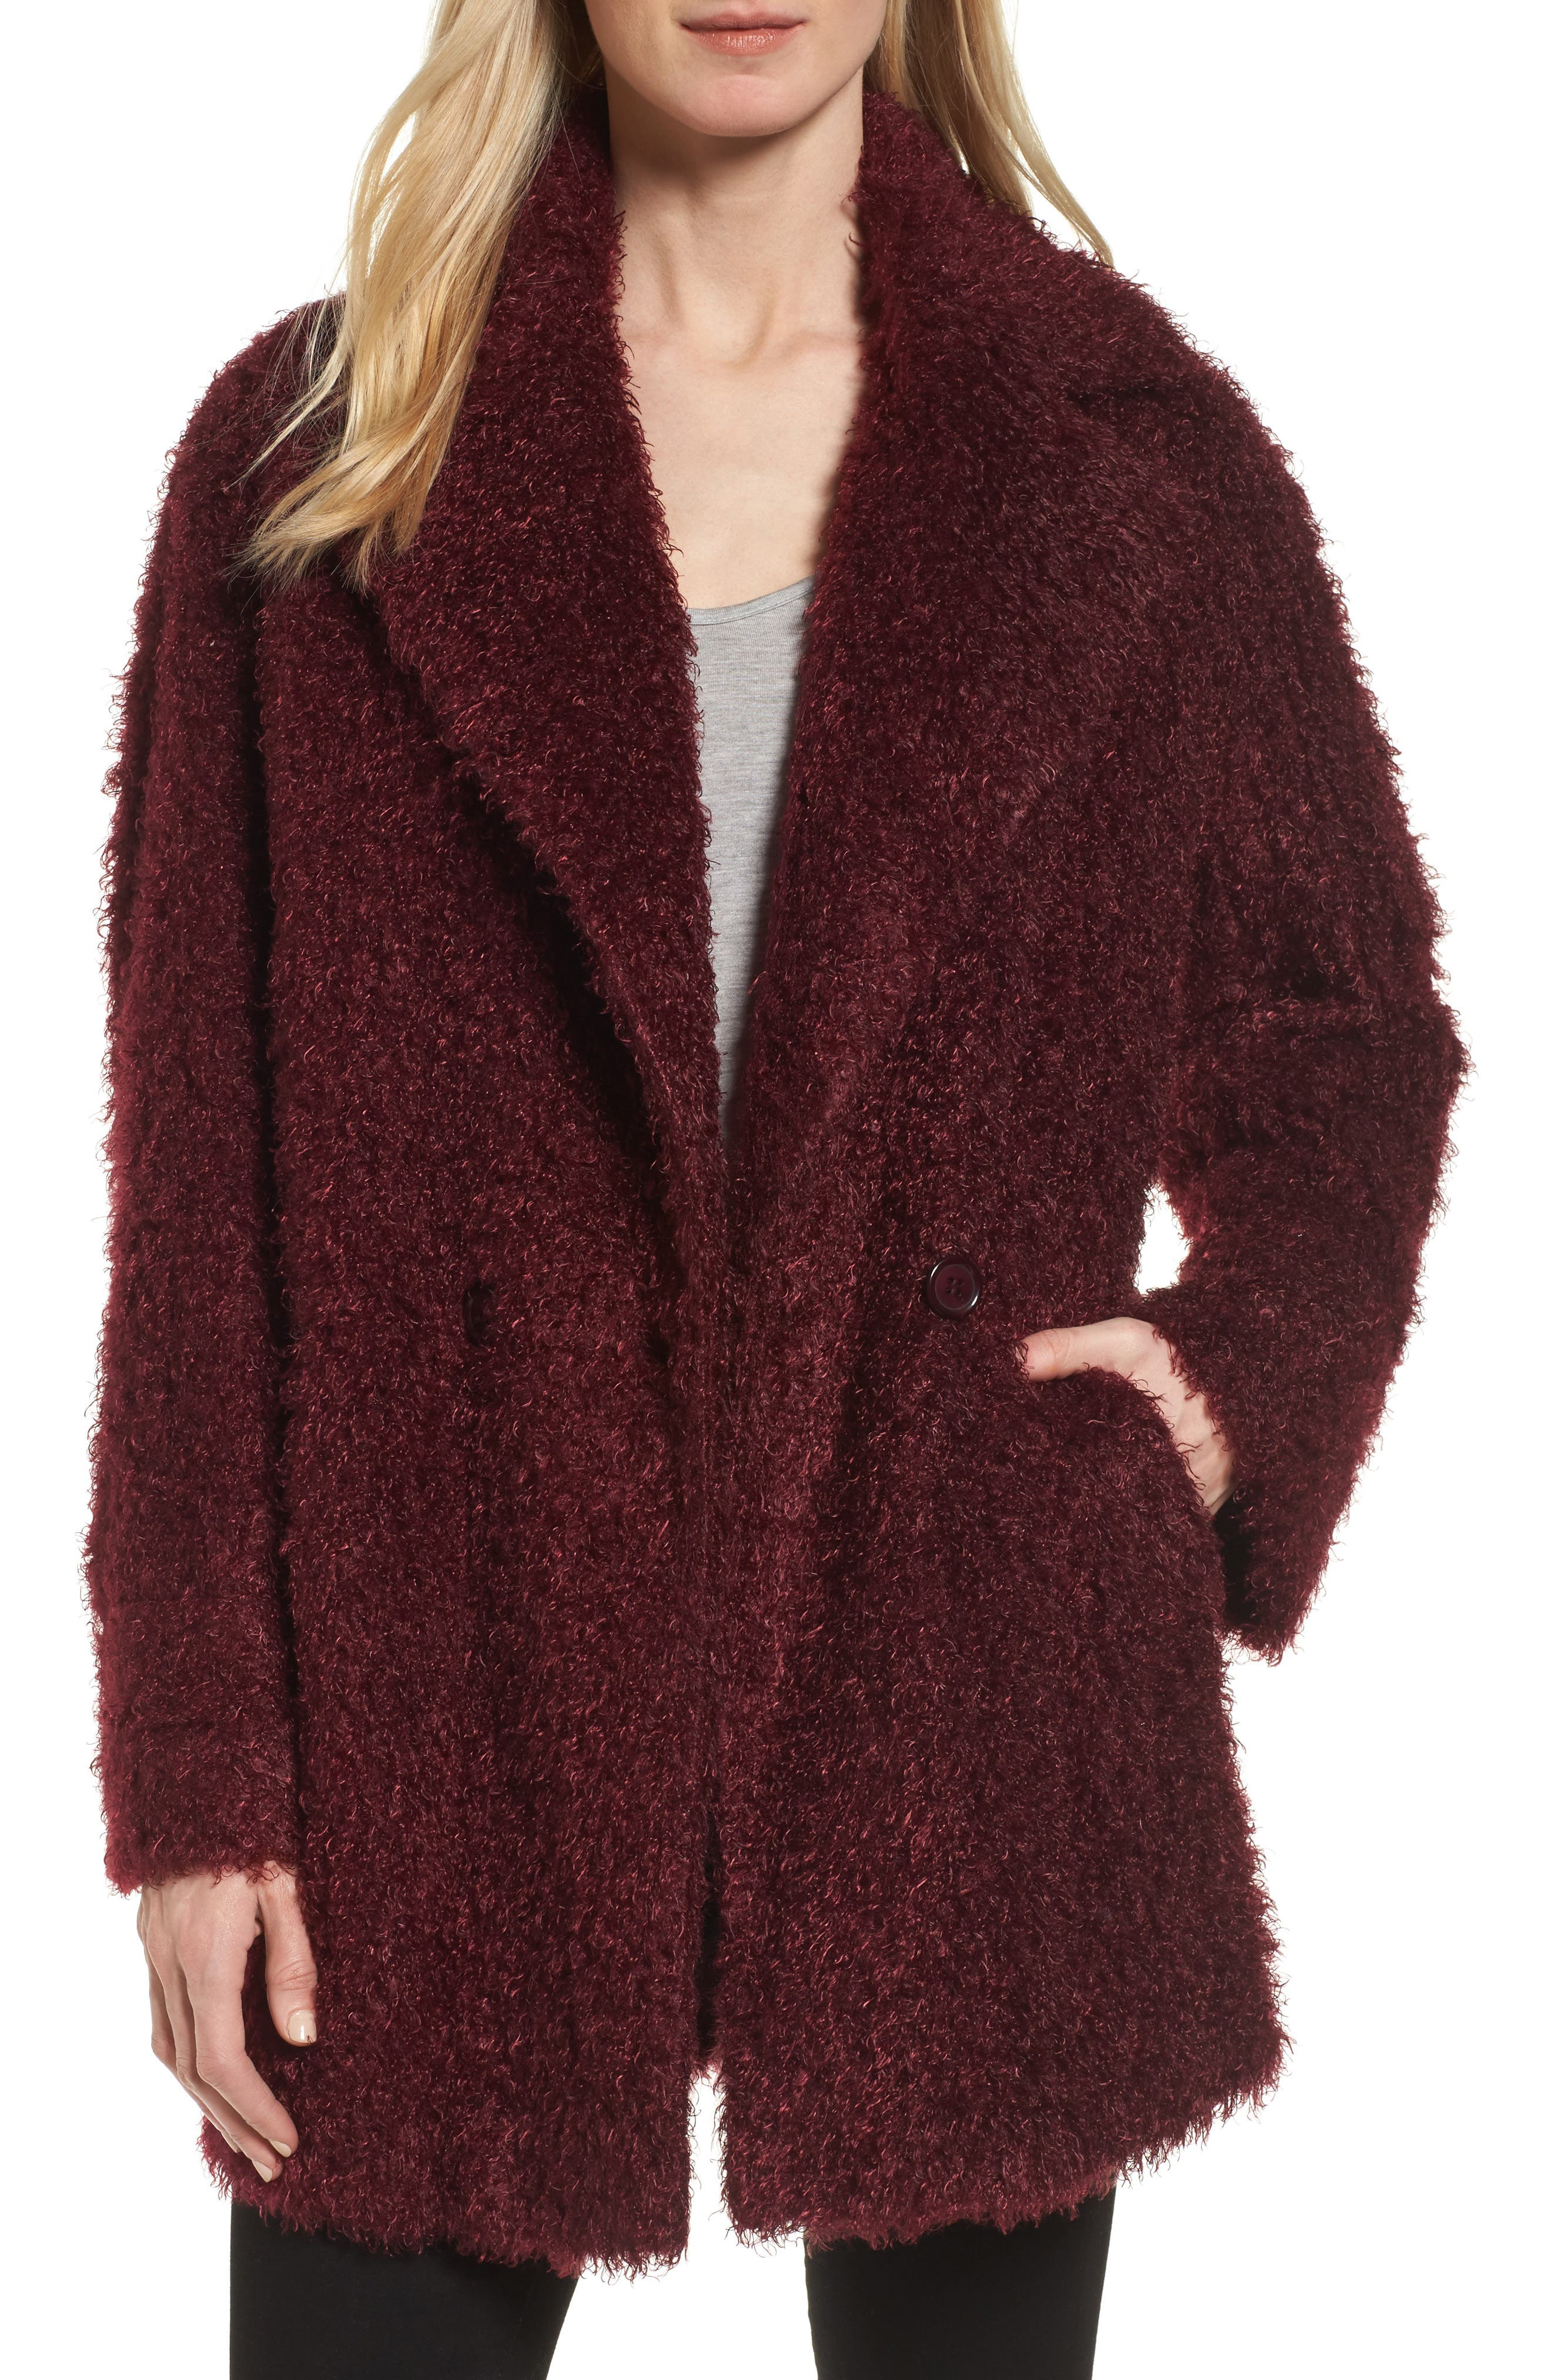 CHARLES GRAY LONDON Supersoft Teddy Faux Fur Coat